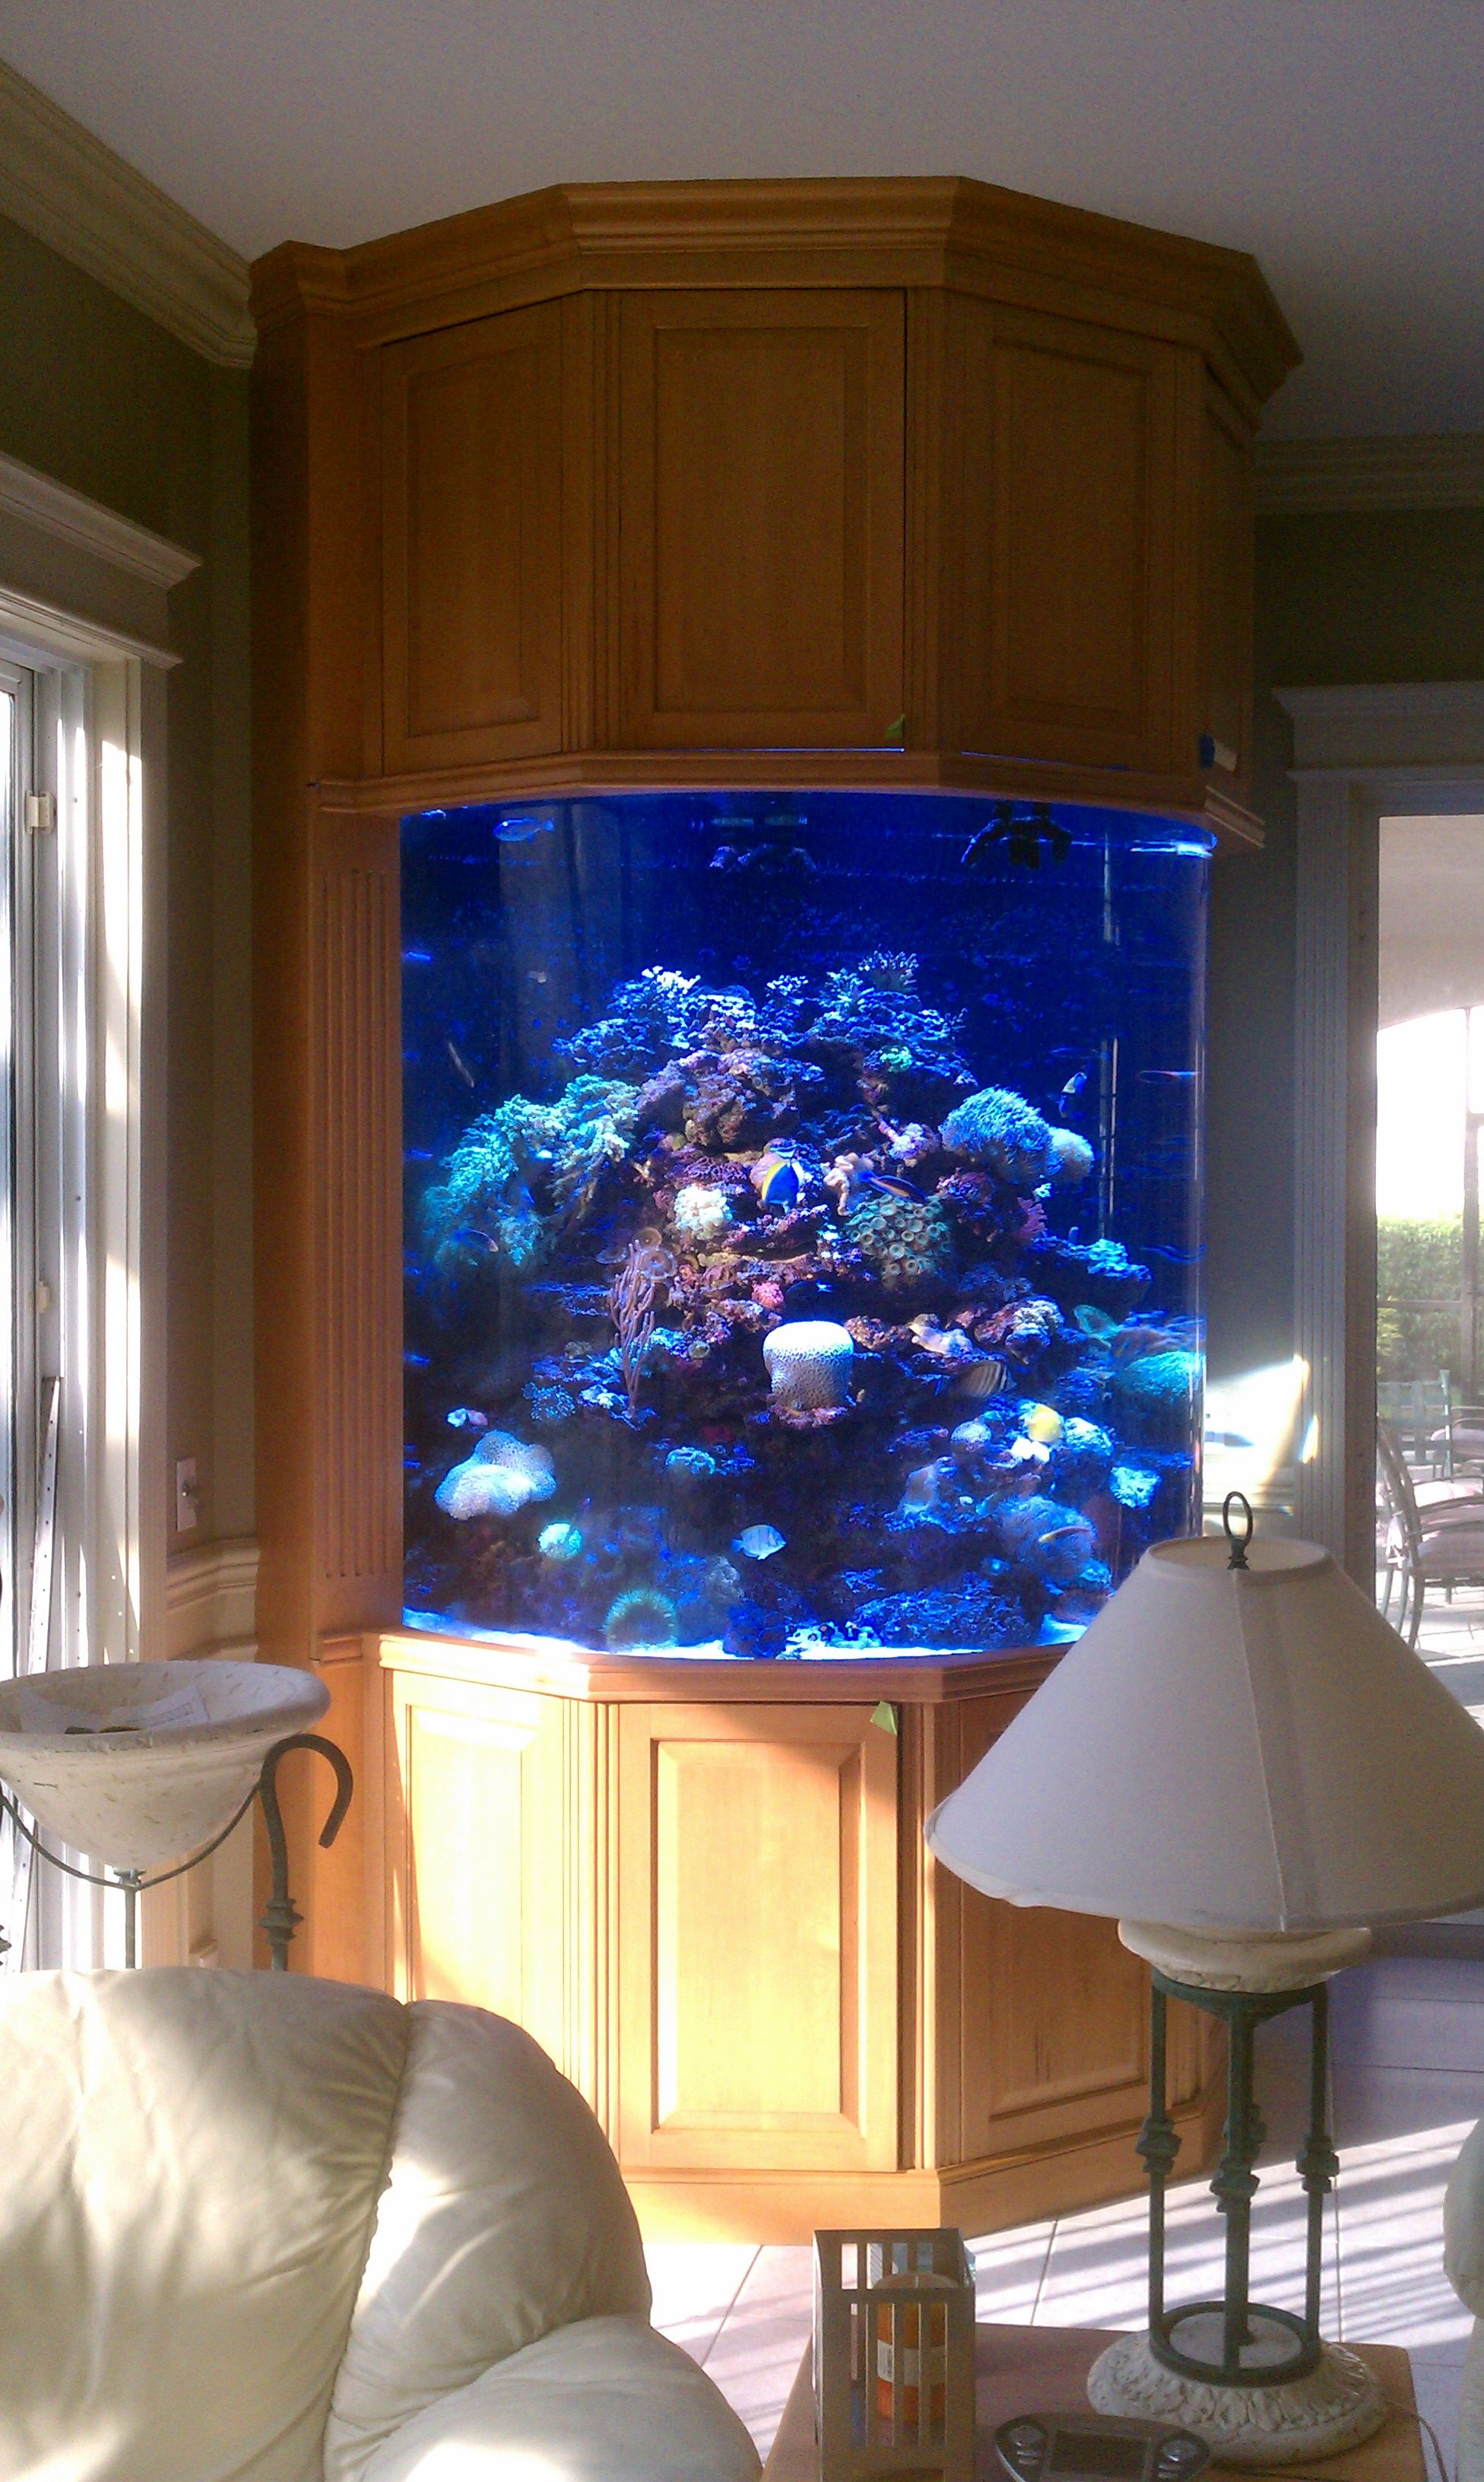 Custom fish tank cabinetry cabinetry by ecco woodcrafts for Wall fish tank